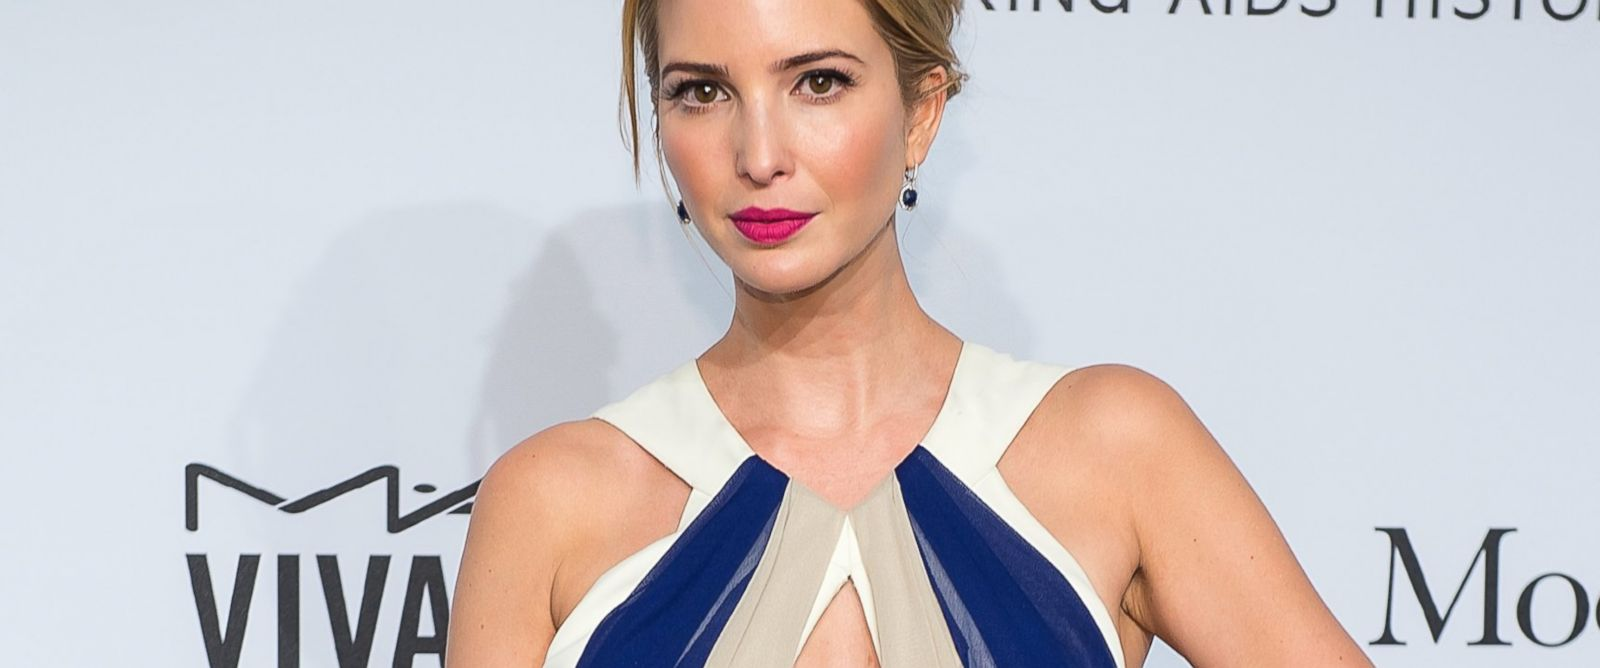 PHOTO: Ivanka Trump attends the 2015 amfAR New York Gala at Cipriani Wall Street, Feb. 11, 2015, in New York.